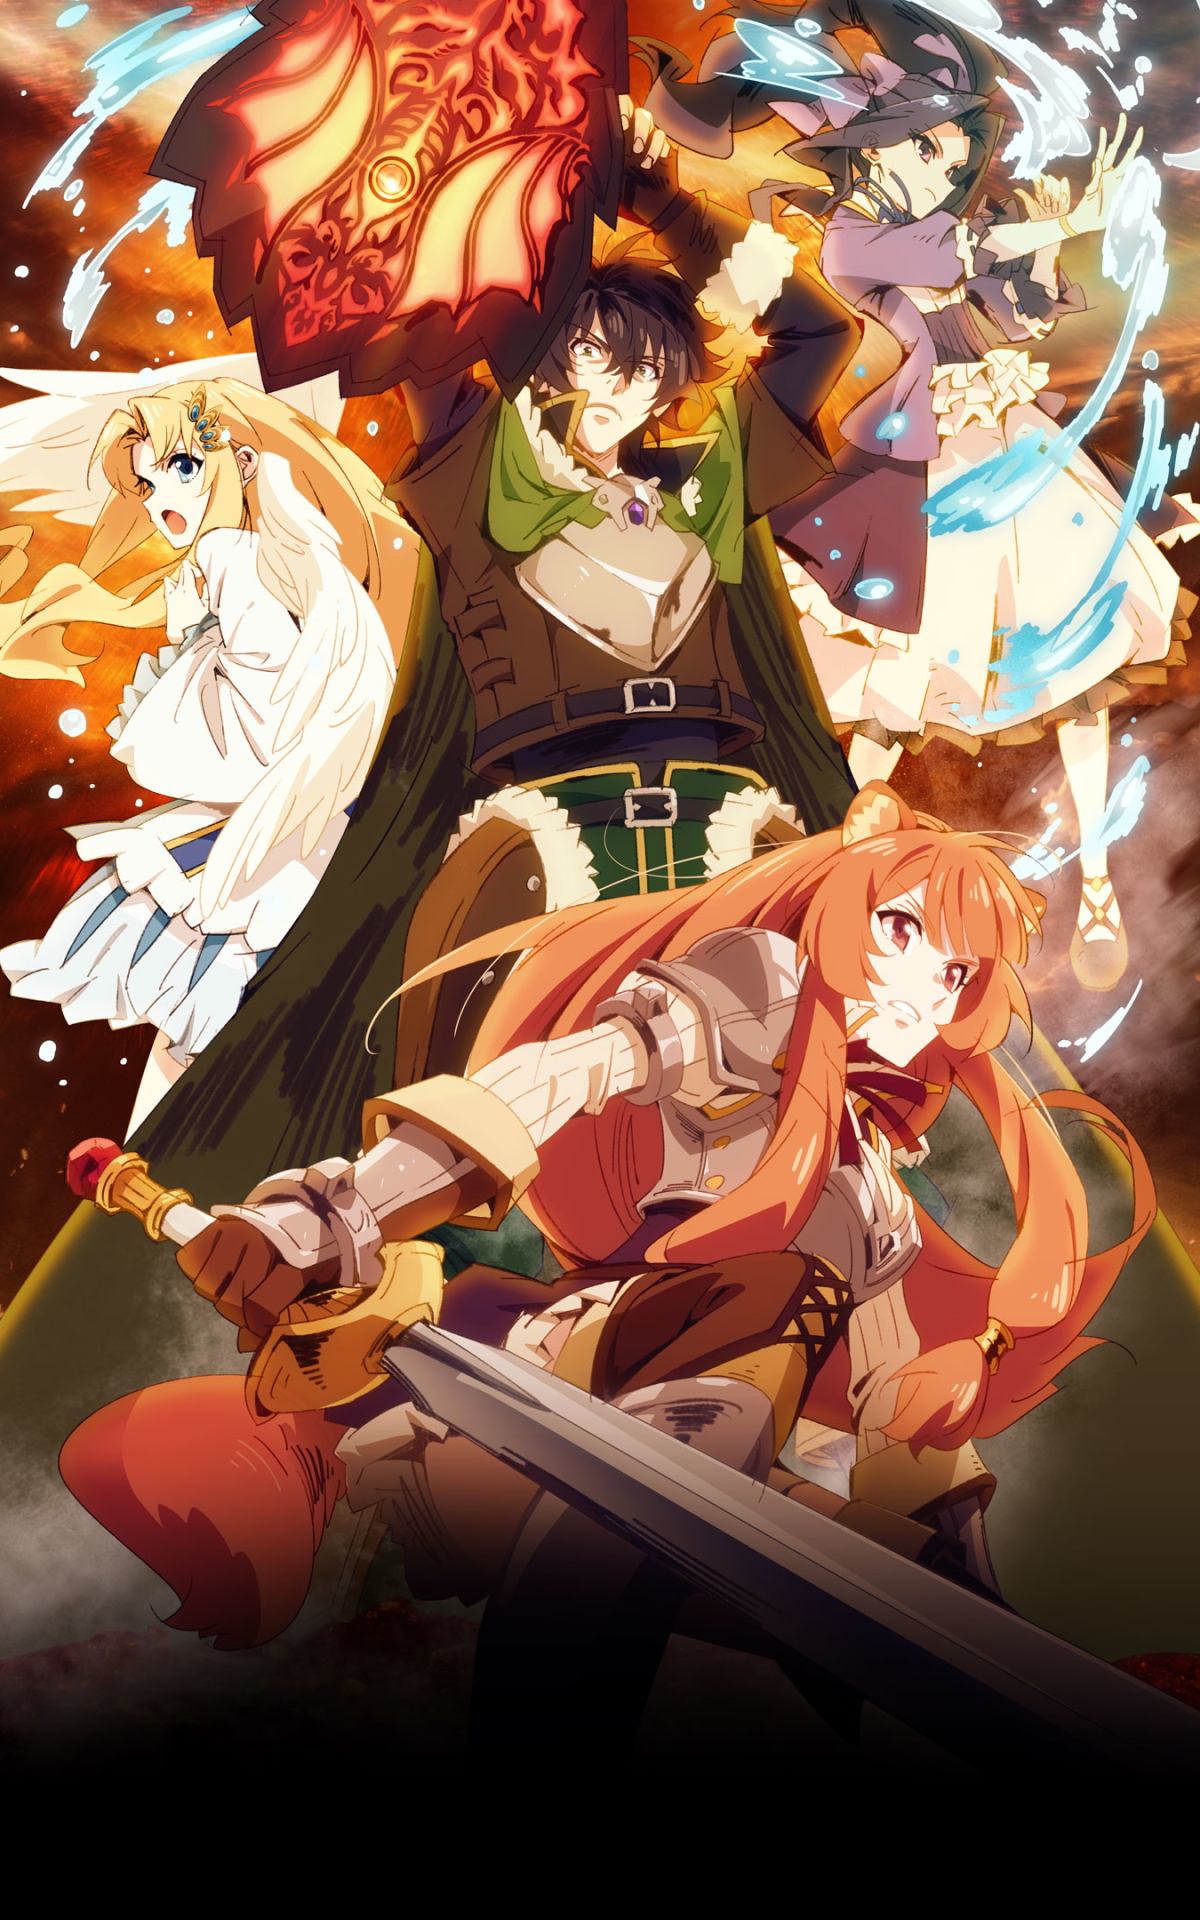 Anime The Rising Of The Shield Hero 1200x1920 Wallpaper Id